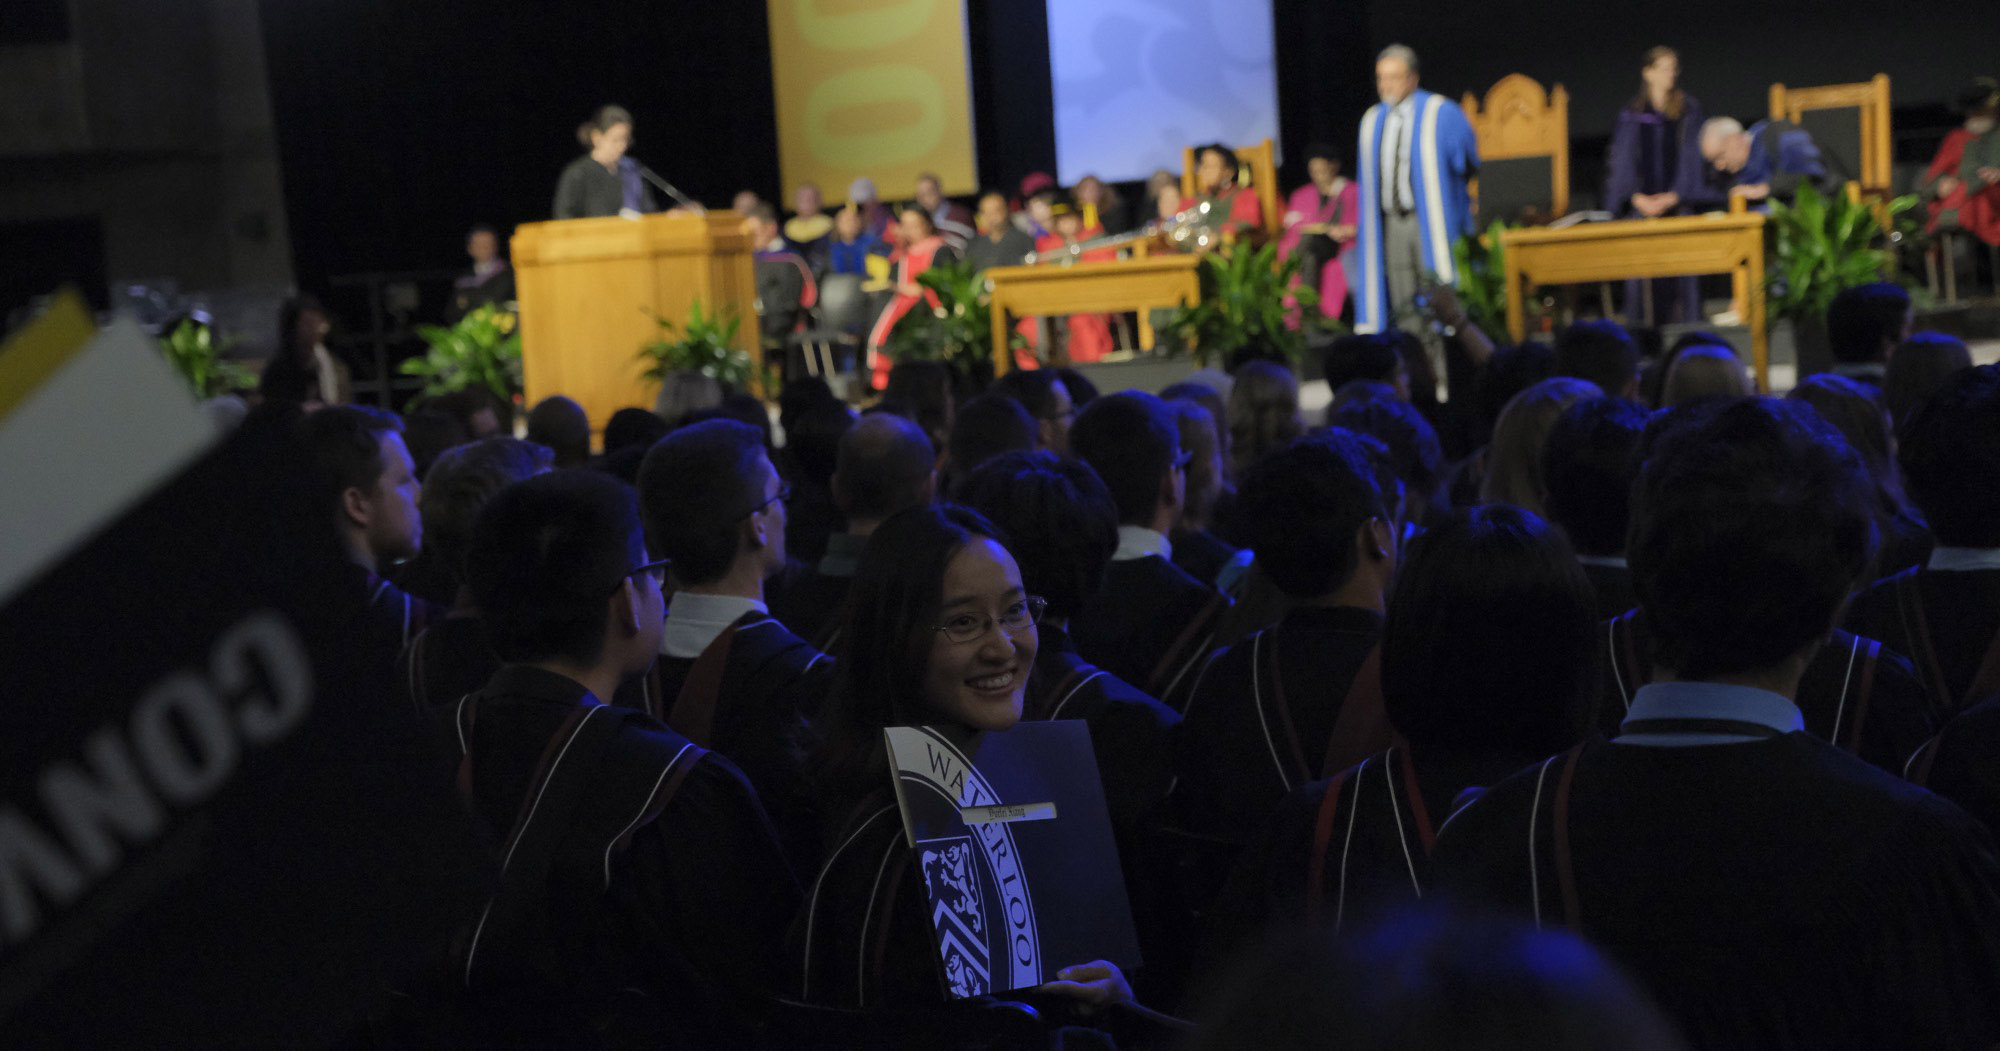 Excited graduate sitting at convocation